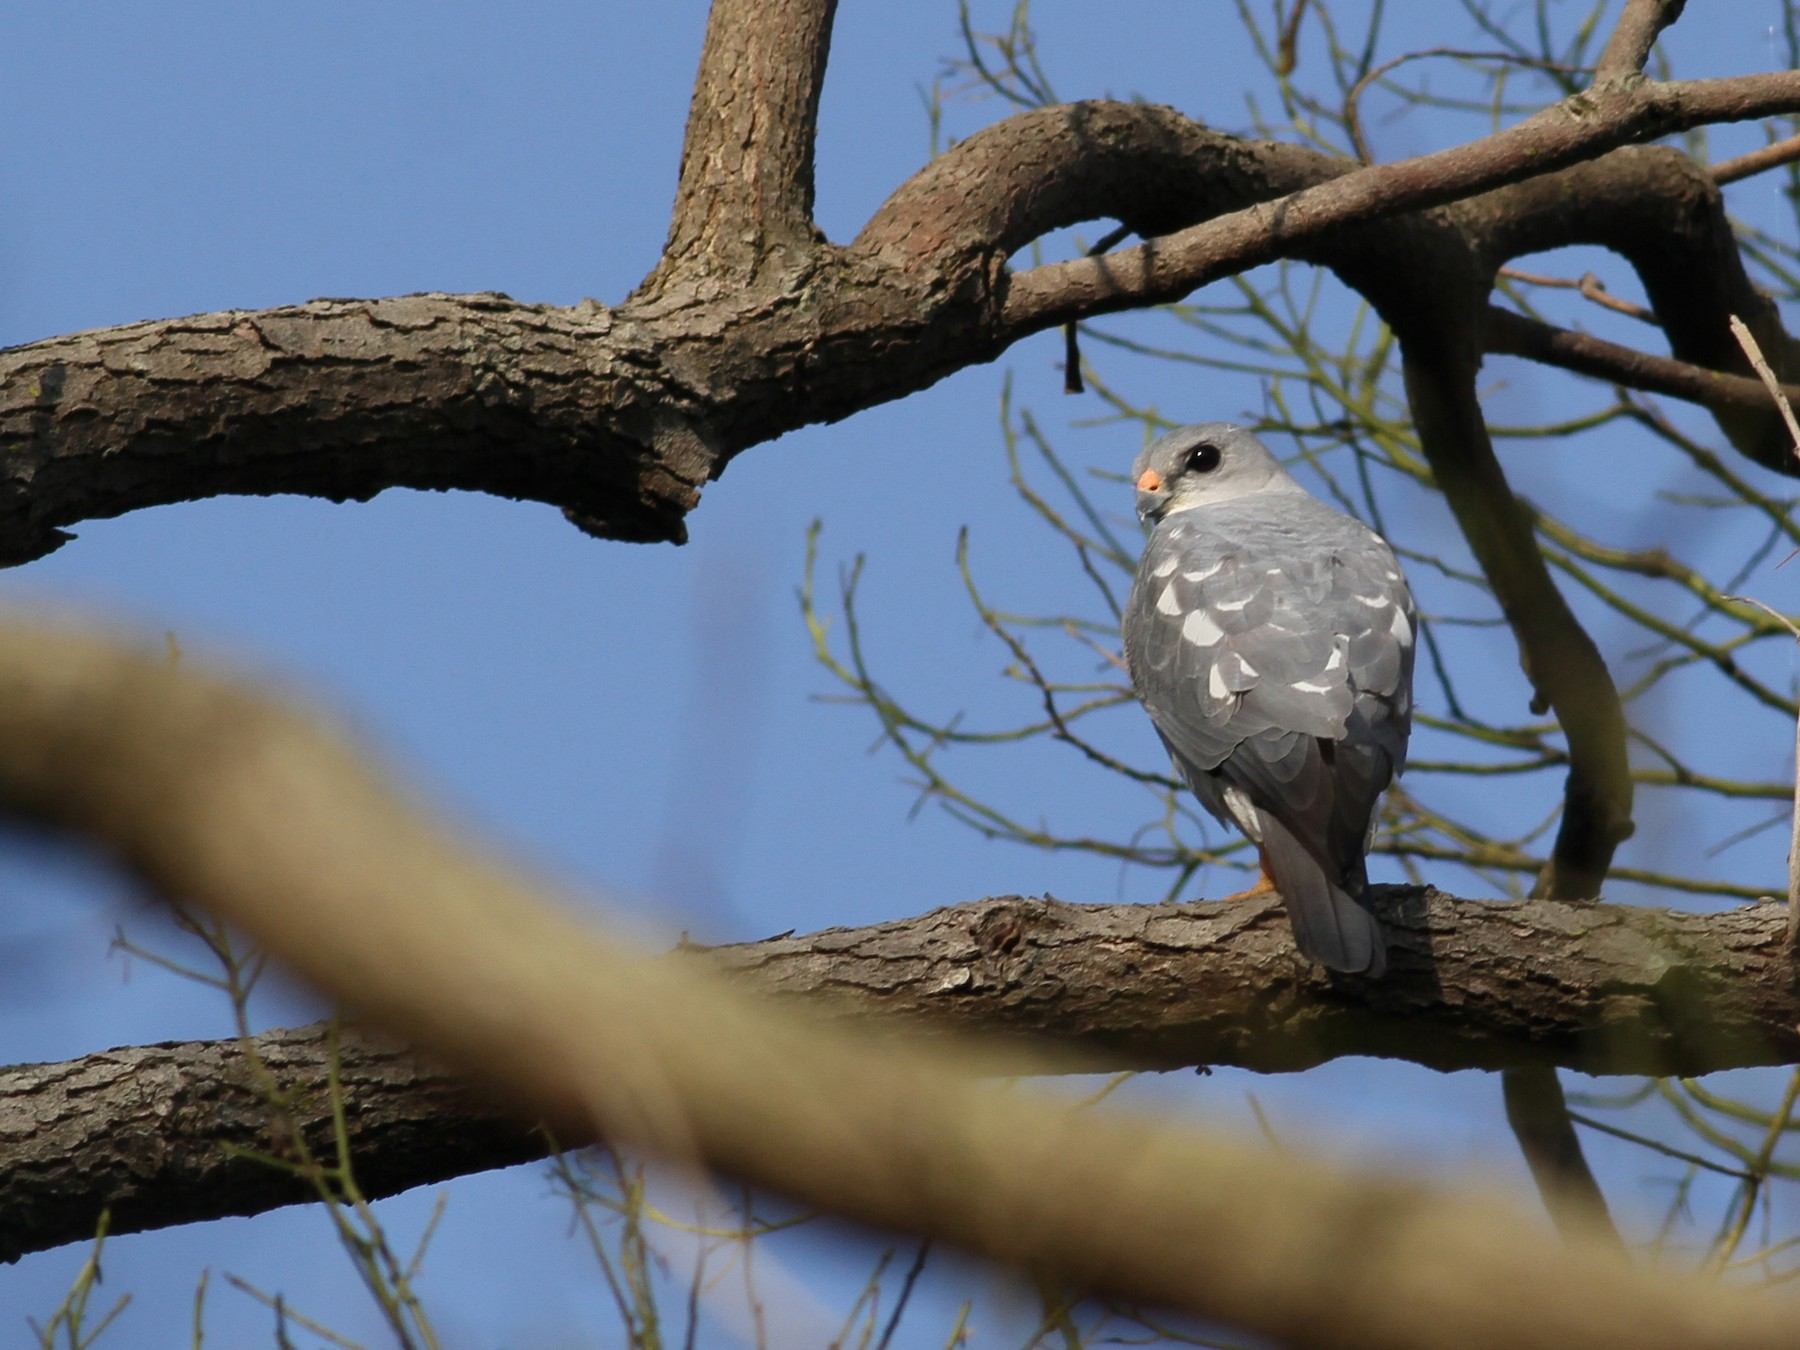 Chinese Sparrowhawk - Ting-Wei (廷維) HUNG (洪)